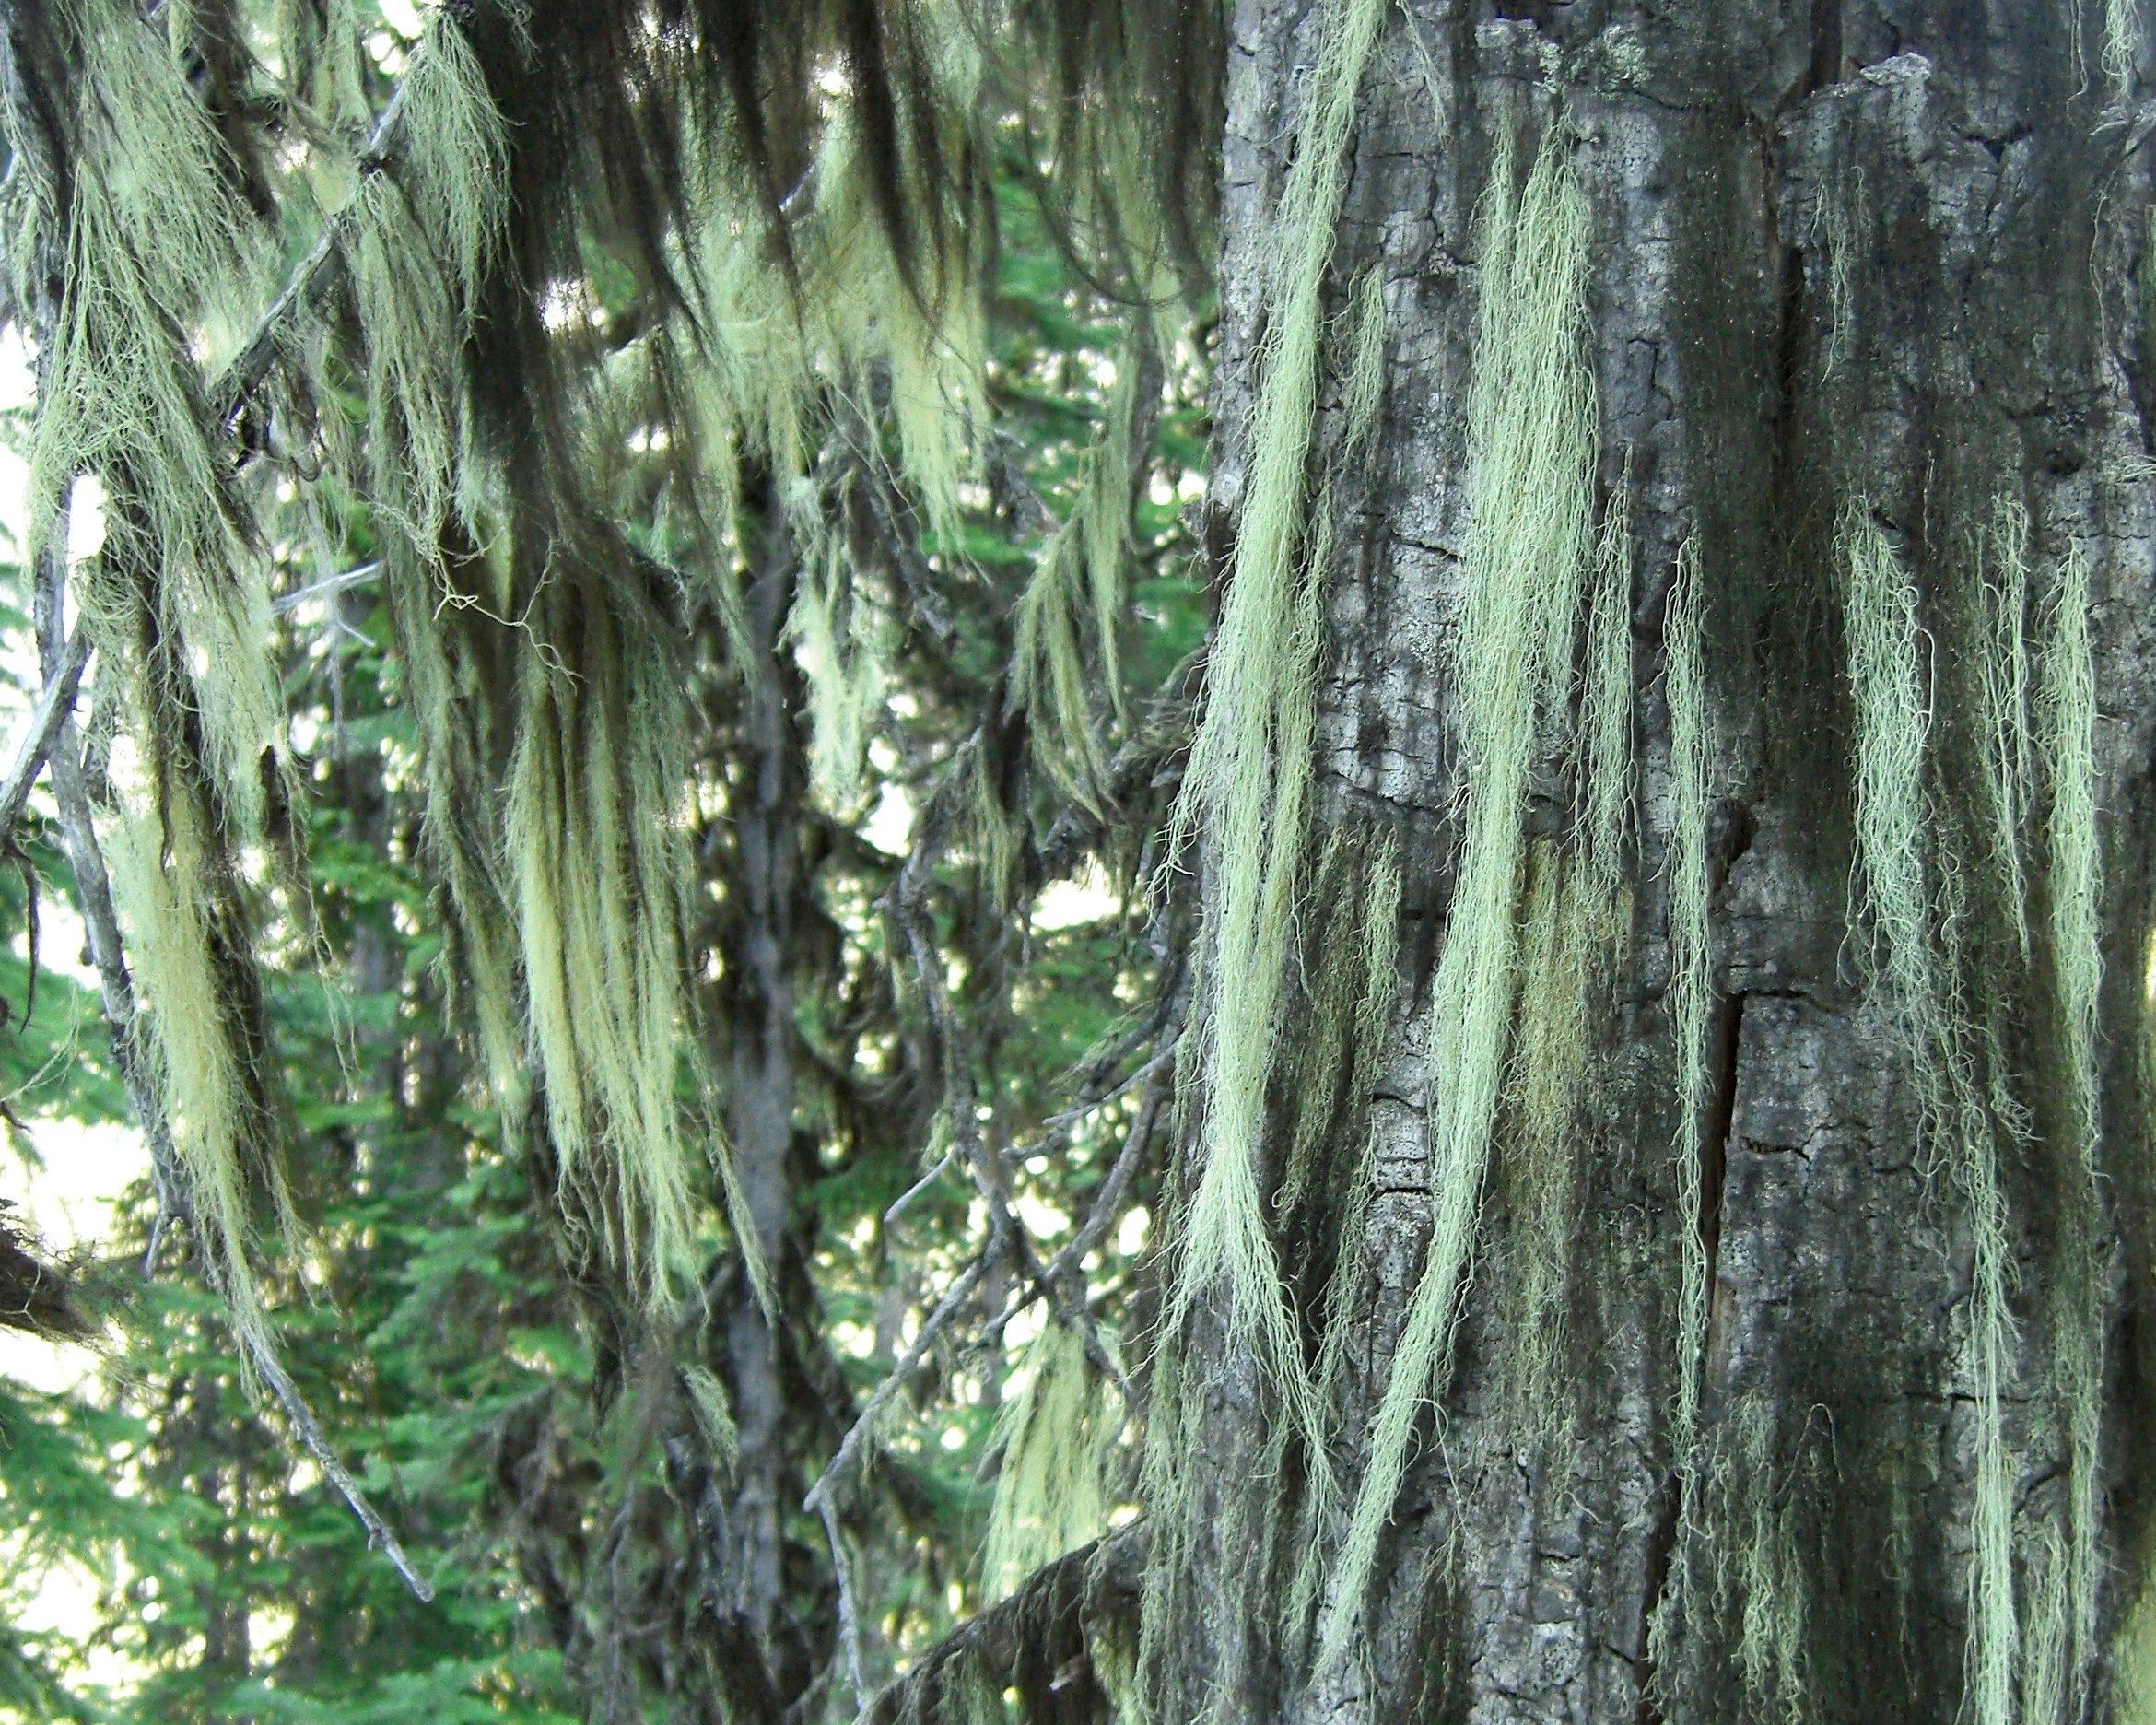 Image of witch's hair lichen